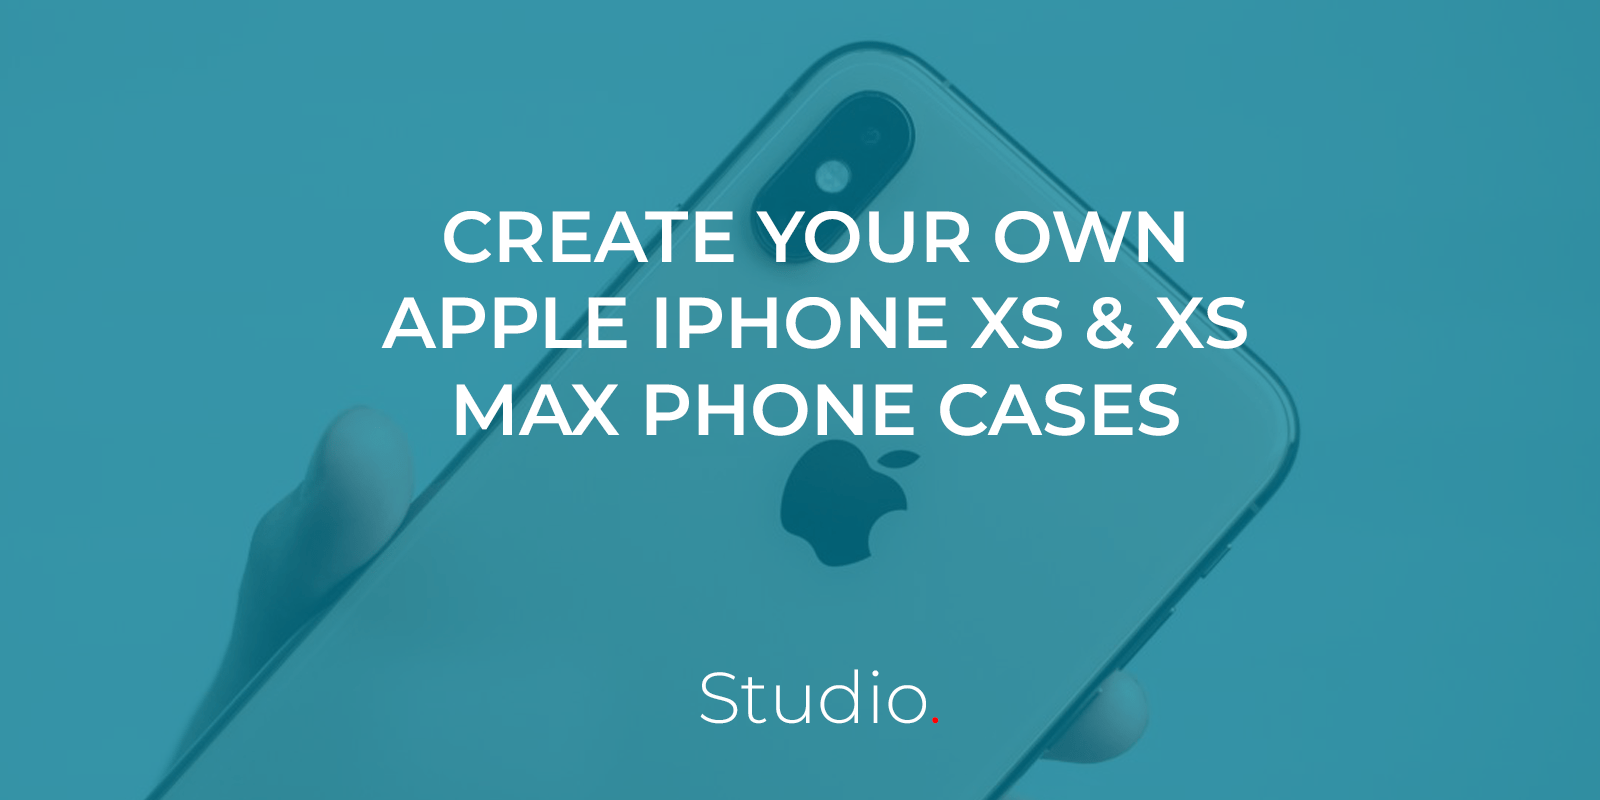 Create a custom phone case for your iPhone XS or iPhone XS Max